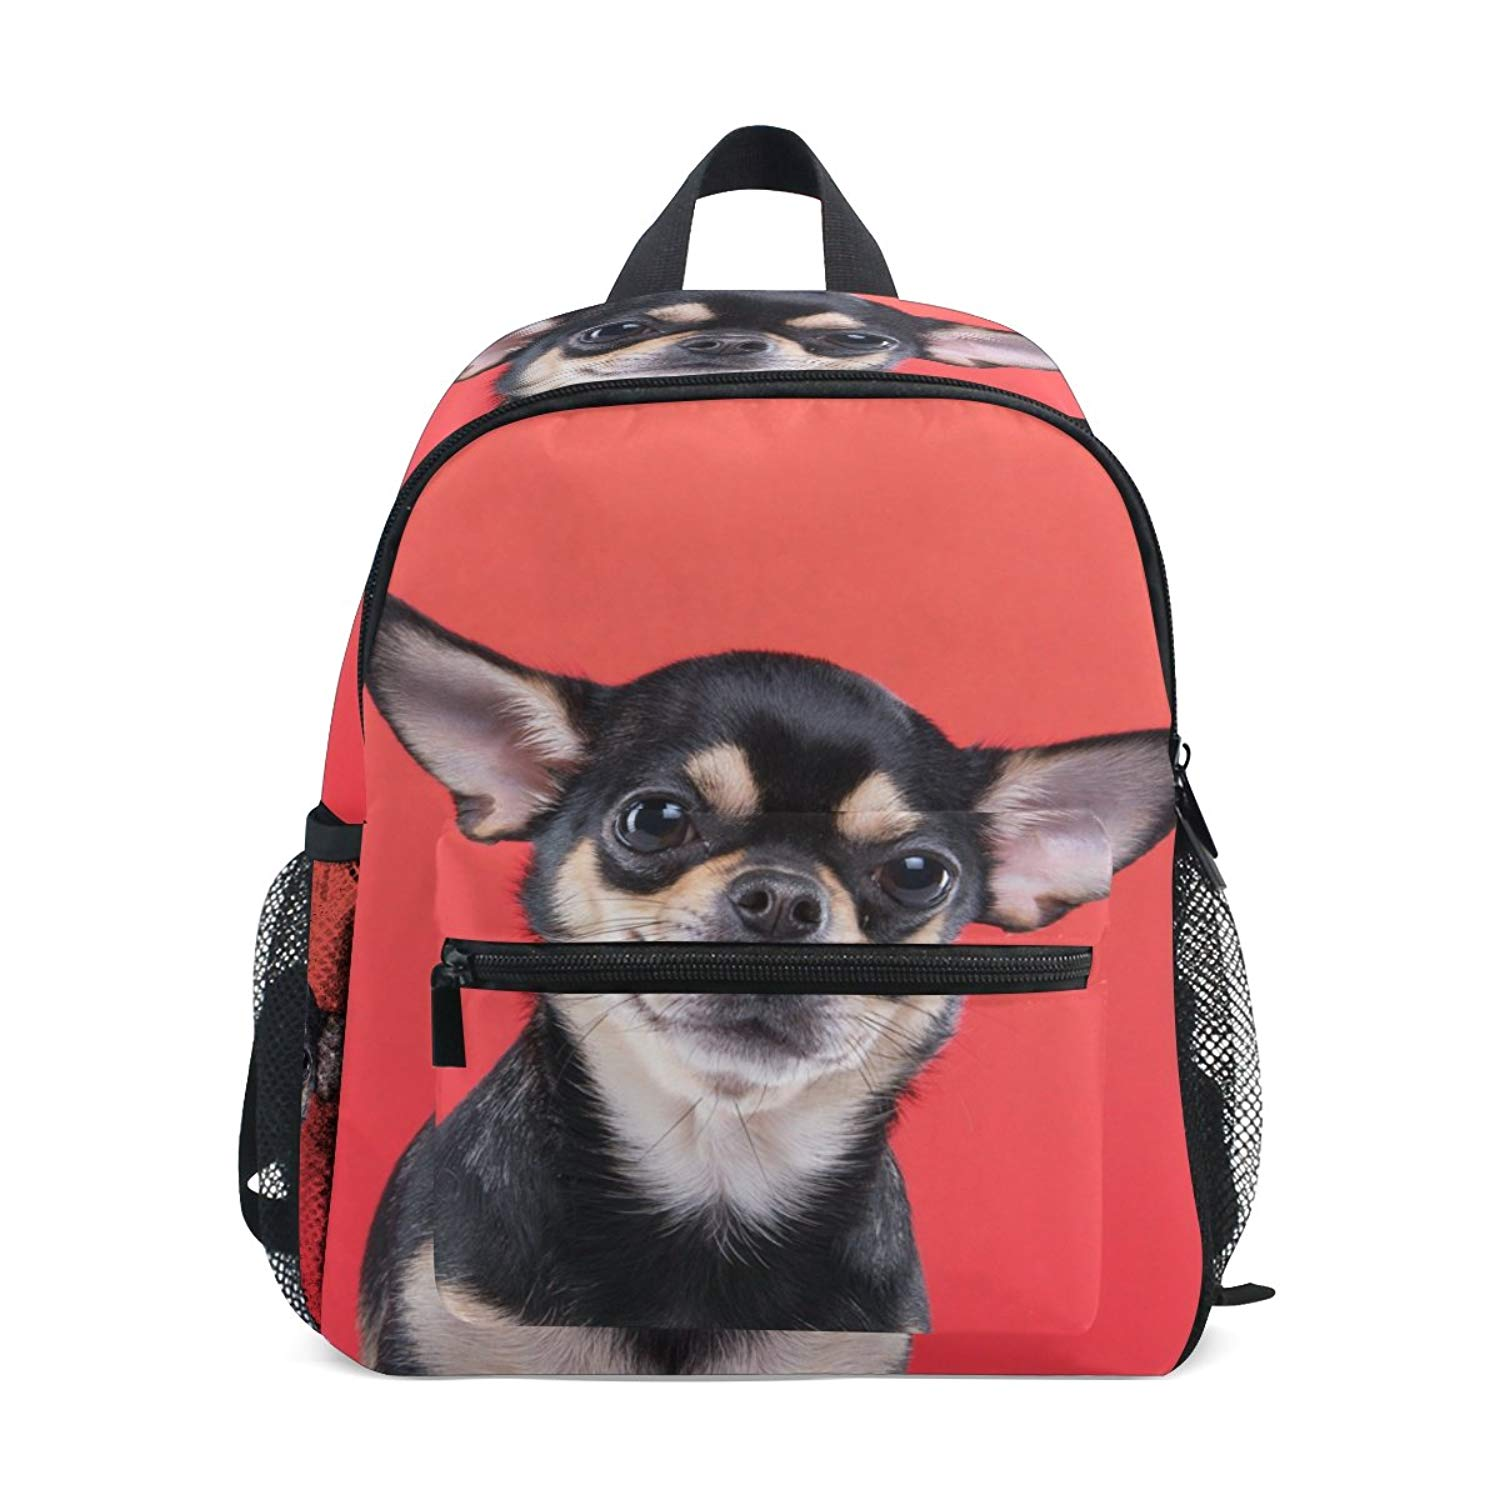 22188c4839 Get Quotations · Cute Chihuahua Dog Kids Backpacks Preschool Book Bag  Travel Daypack Boys Girls